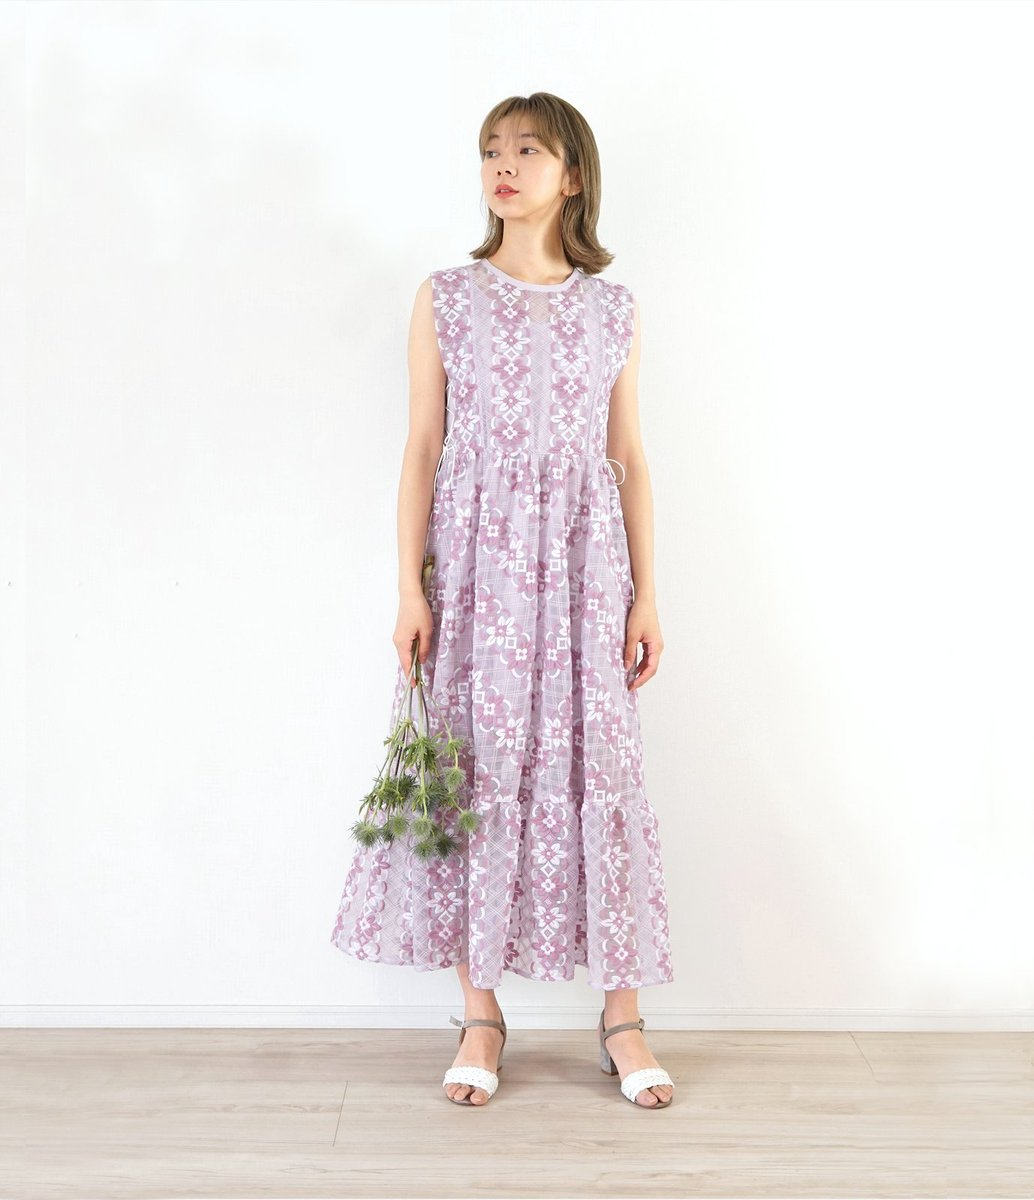 . Enlee.2020SS COLLECTON. Embroidery dress. #enlee #3月販売予定 #刺繍ドレス #オリジナル素材 #オーガンジー #2020SS #コレクション #ルック #スペシャルな日に #パステルカラー #enlee #japanmade #collection #tokyo #japan #dress #heightend #embrodaery  pic.twitter.com/kMKOvUCRB3